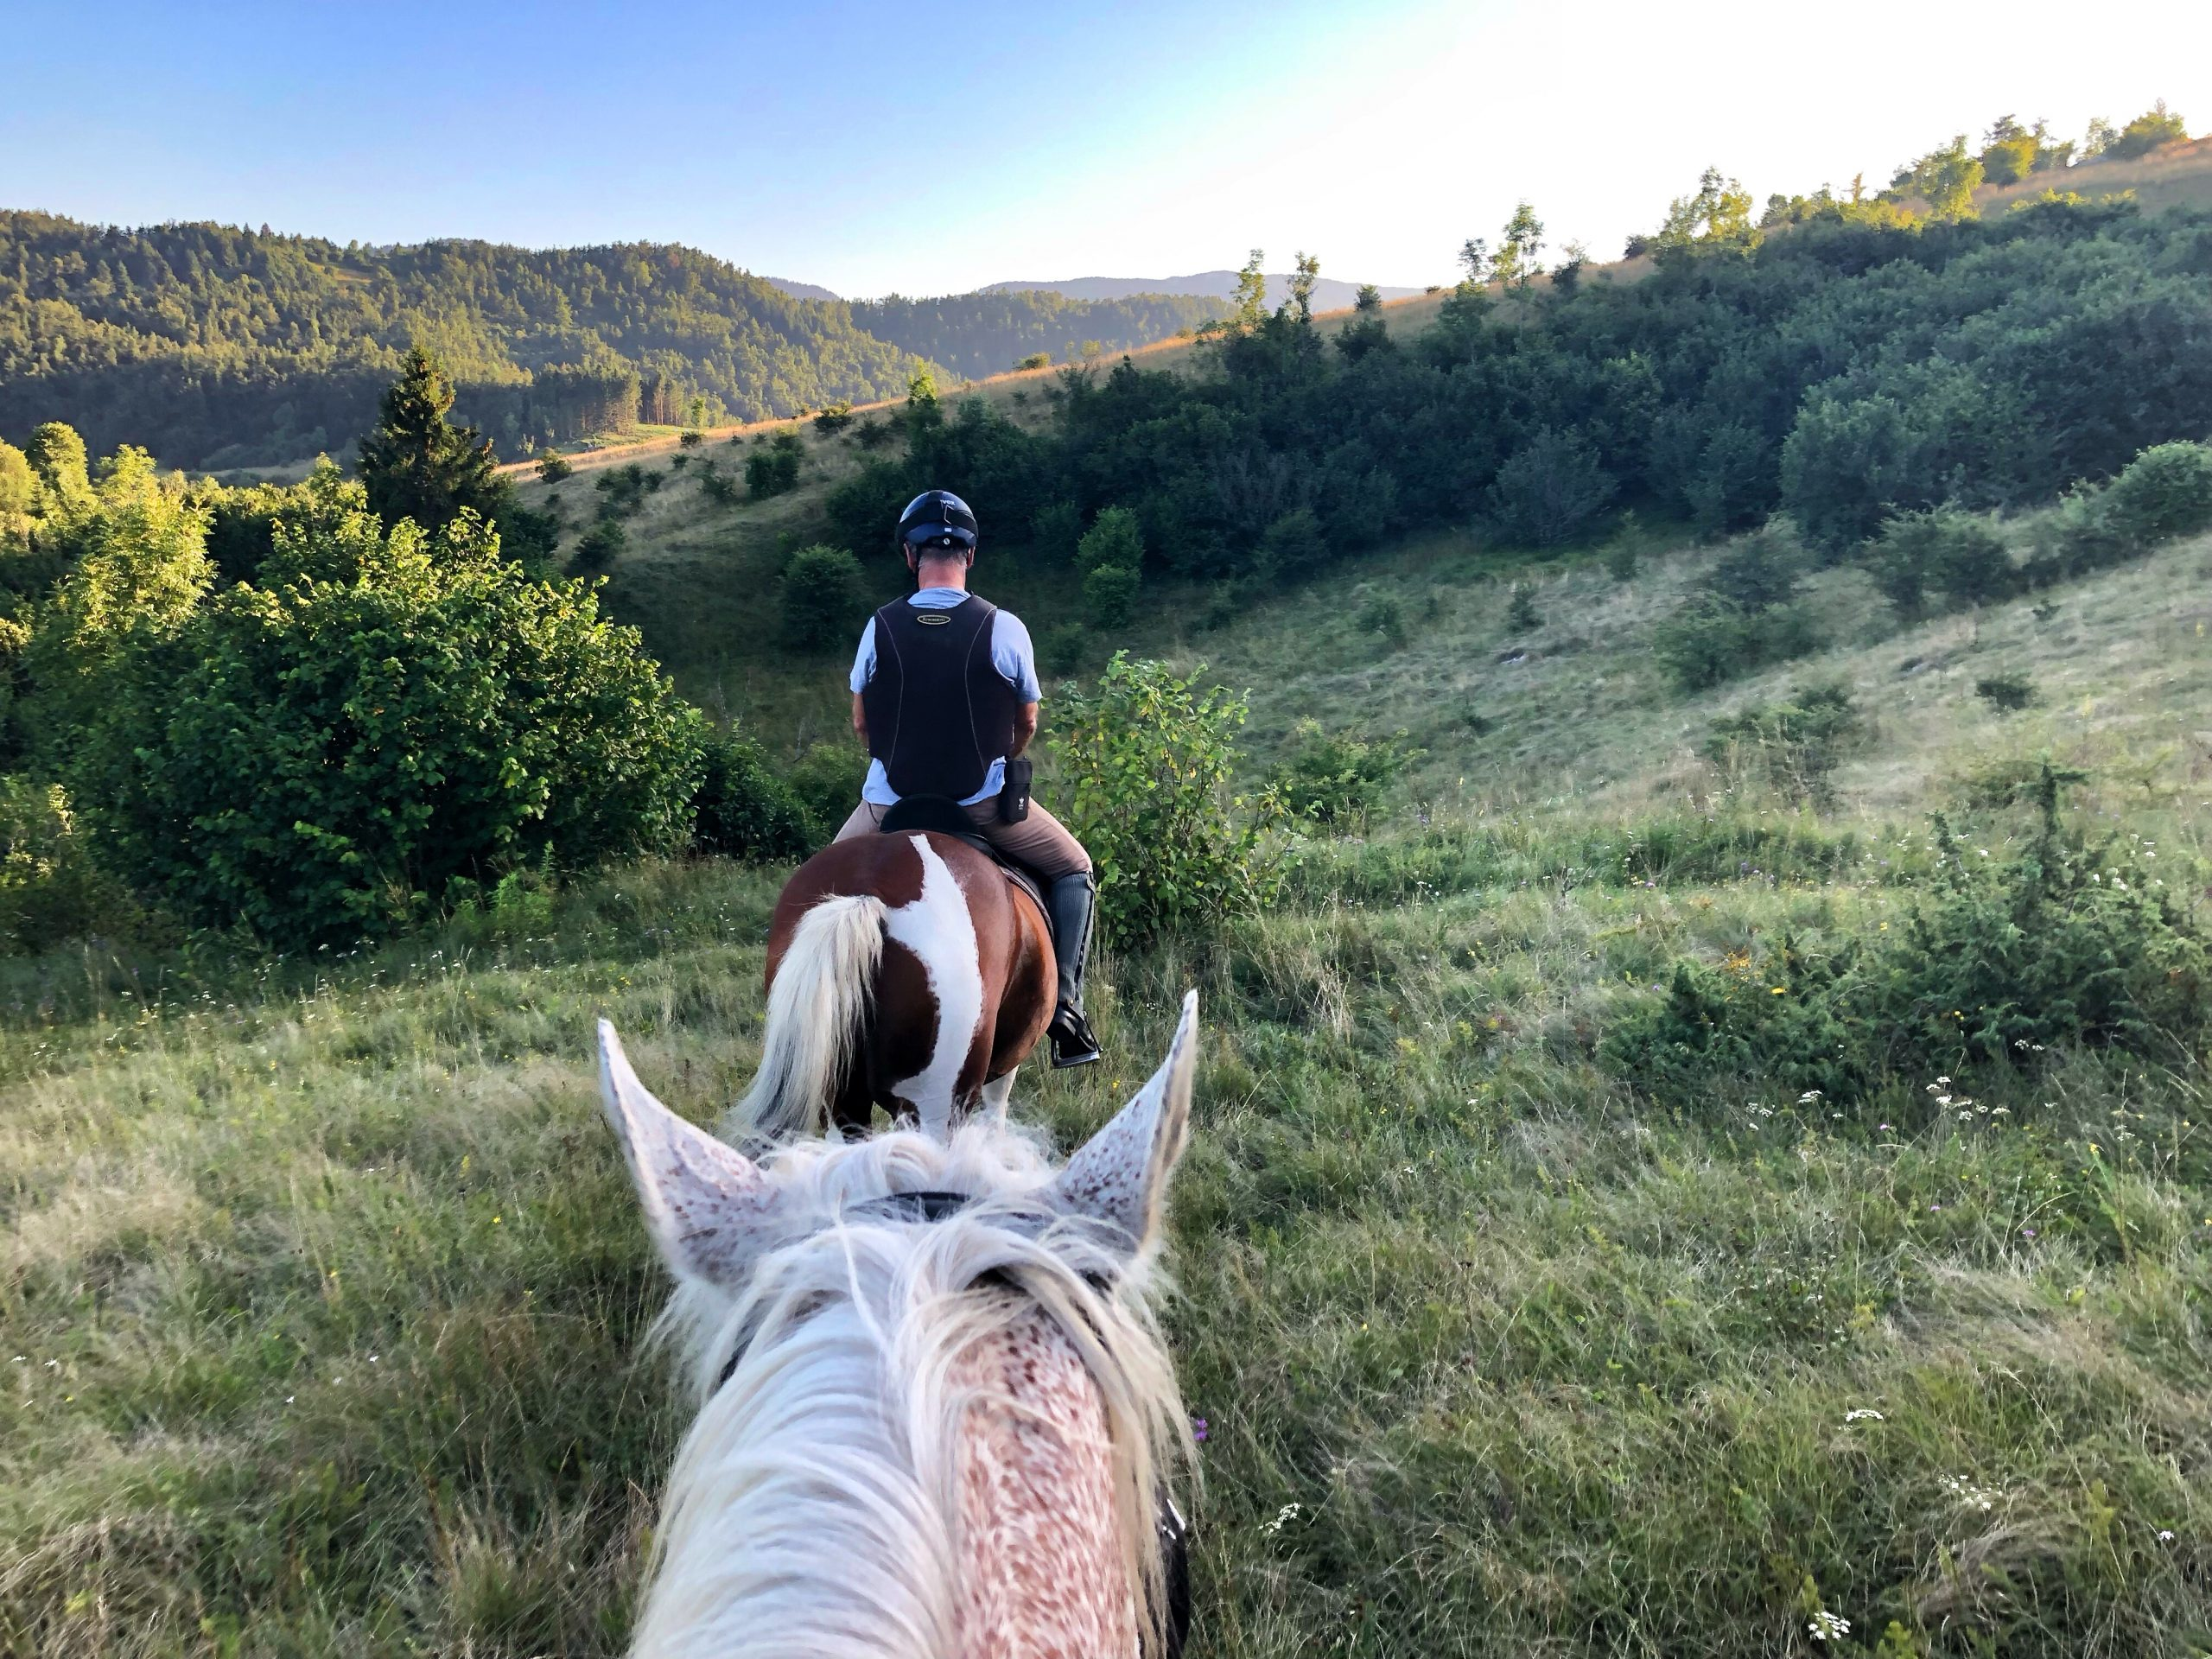 horse-riding-in-mountains-PNNS8GM